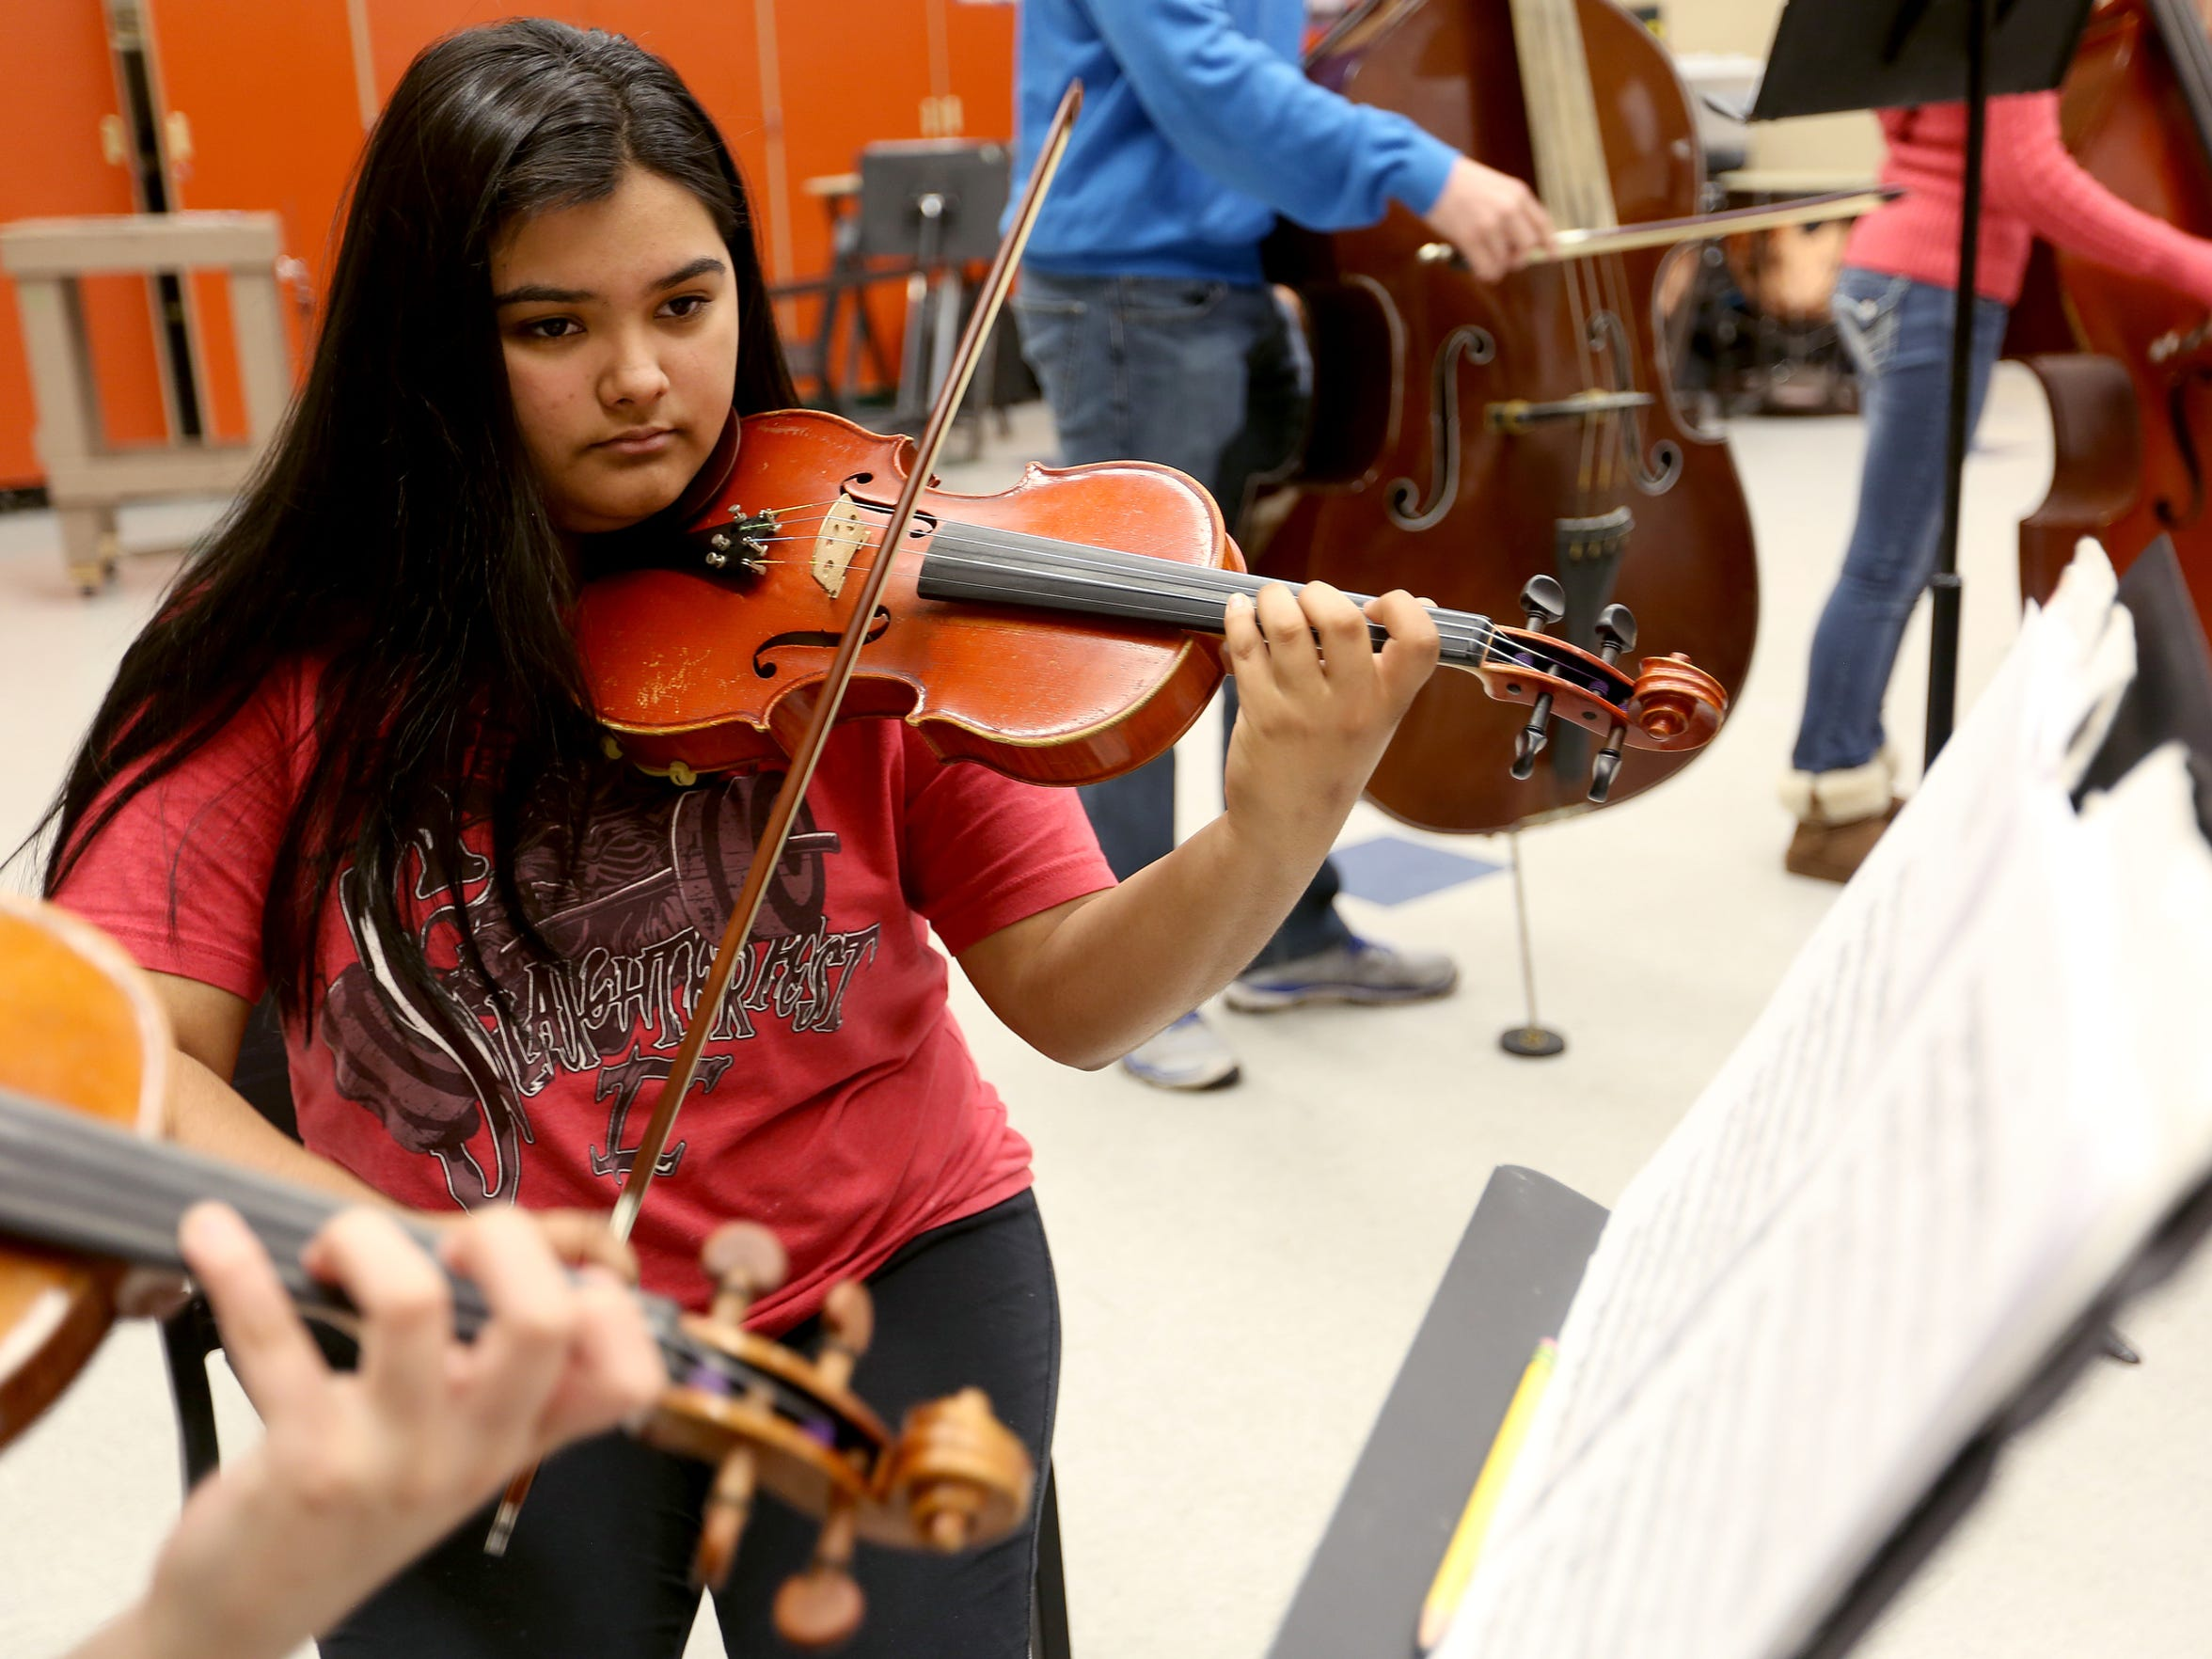 Celeste Moreno, a sophomore, plays first violin during chamber orchestra rehearsal at McKay High School in Salem on Thursday, April 14, 2016. McKay has a full symphony, with wind and strings, competing in the state music competition for the first time this year.